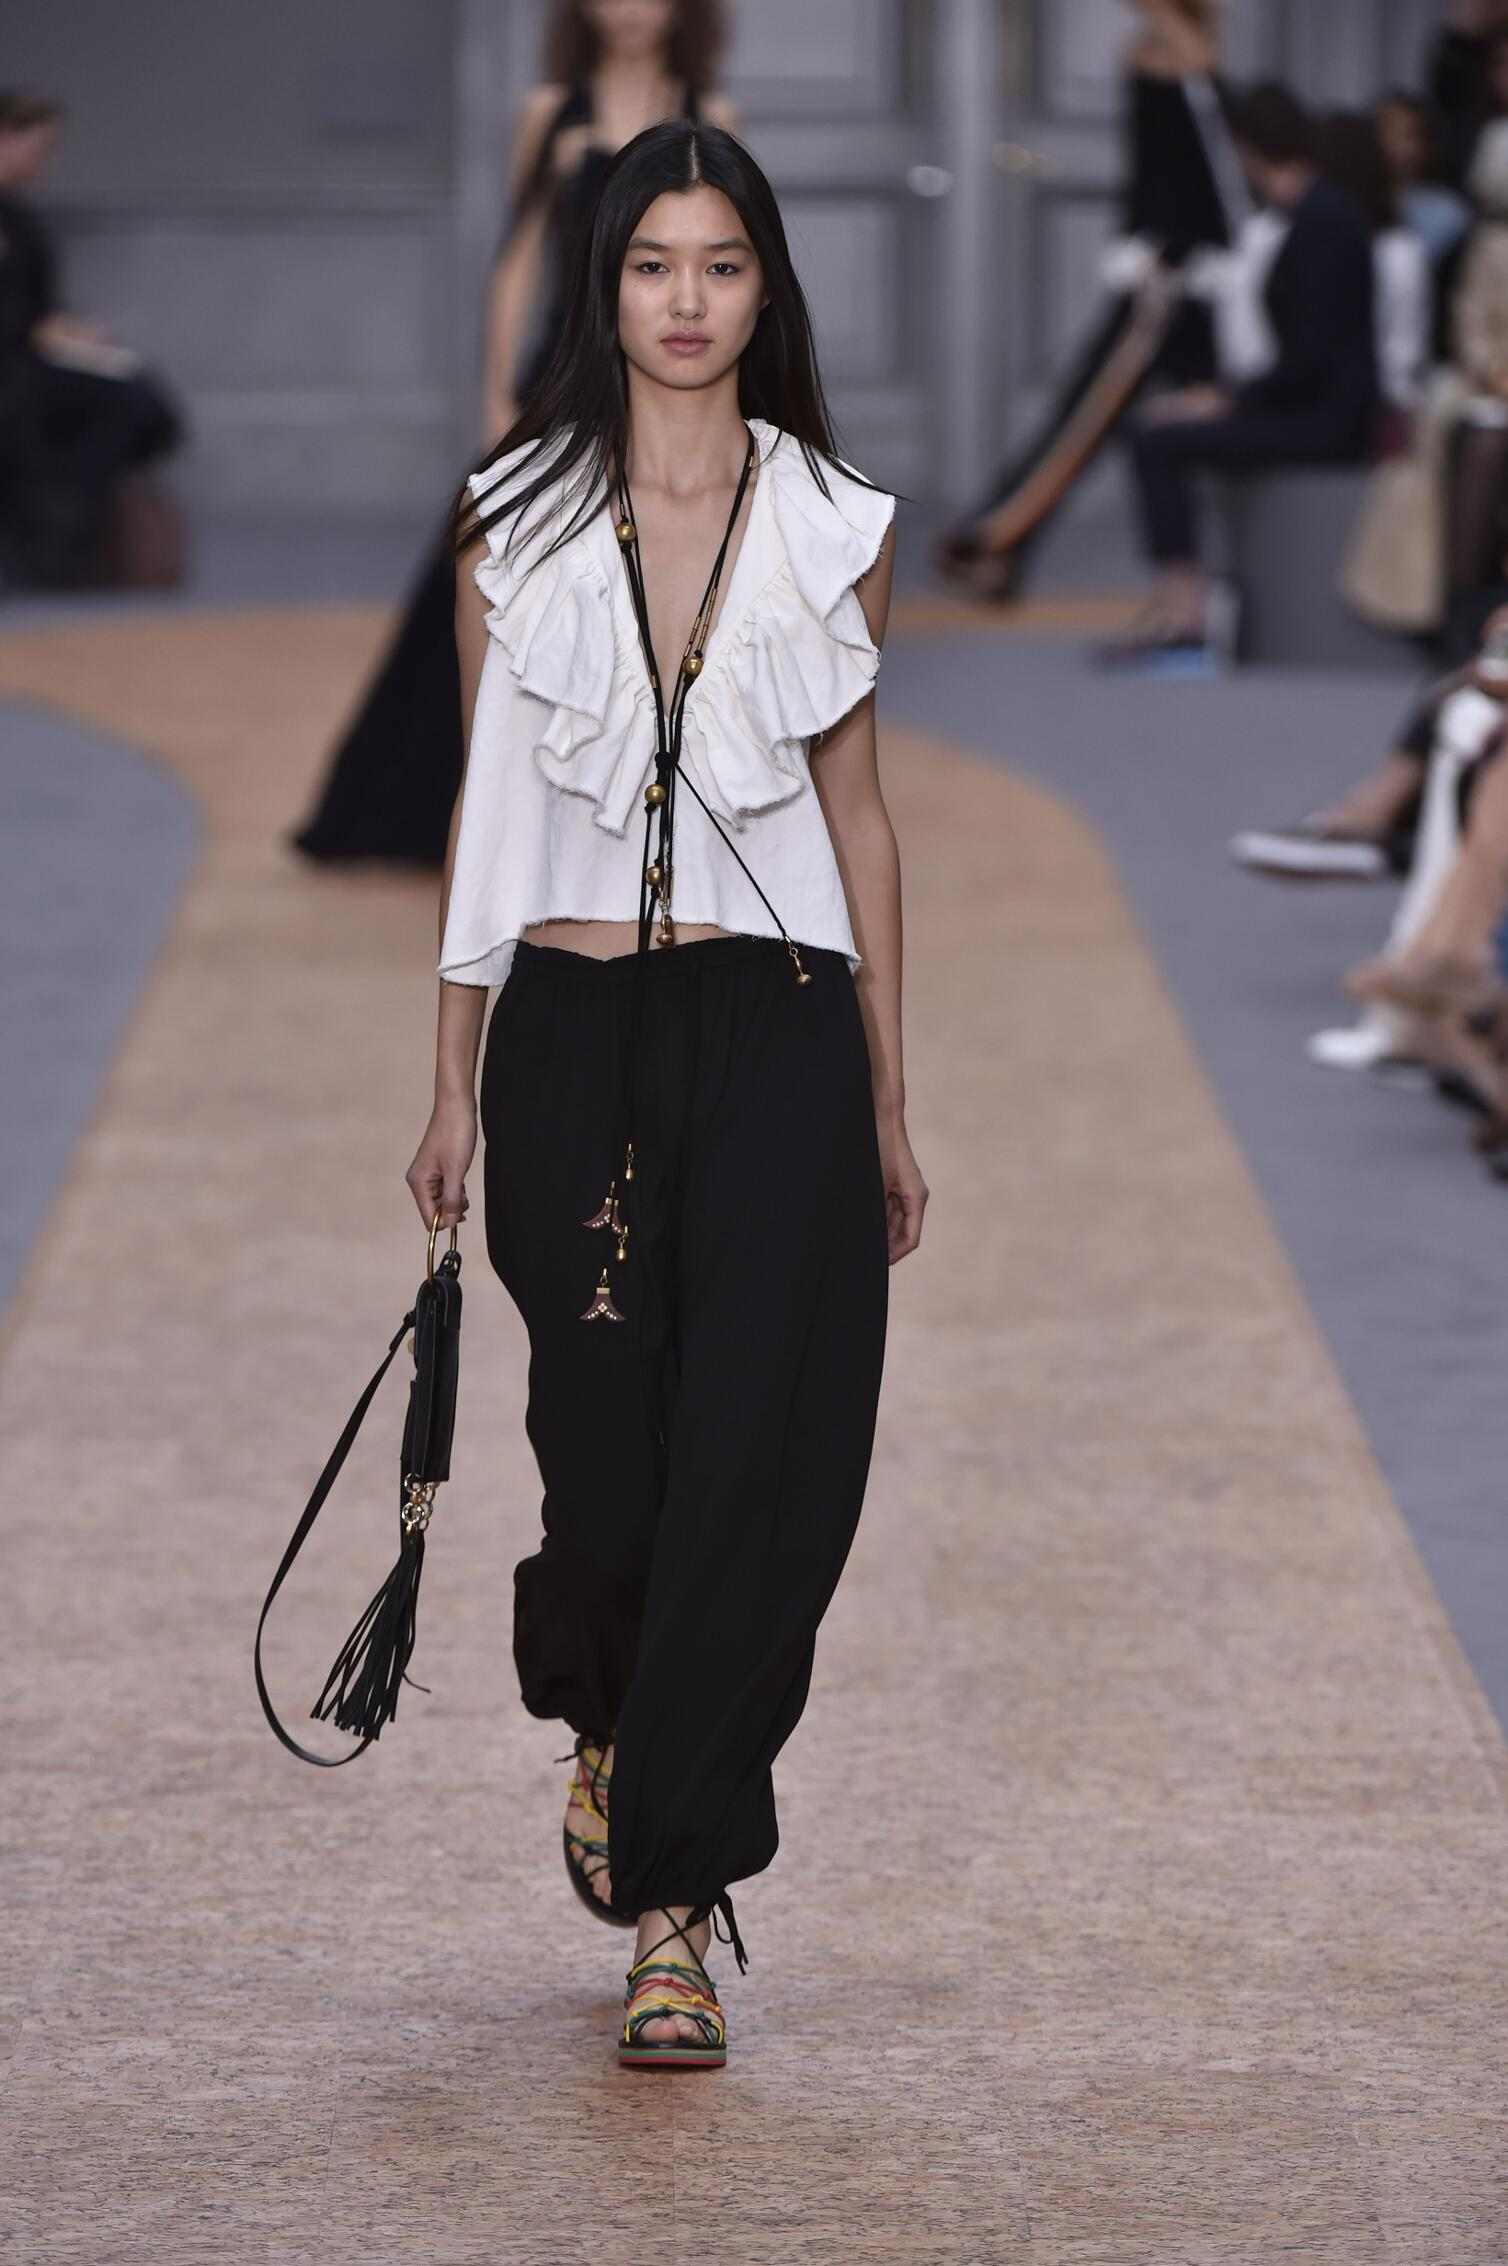 Summer Fashion Trends 2016 Chloé